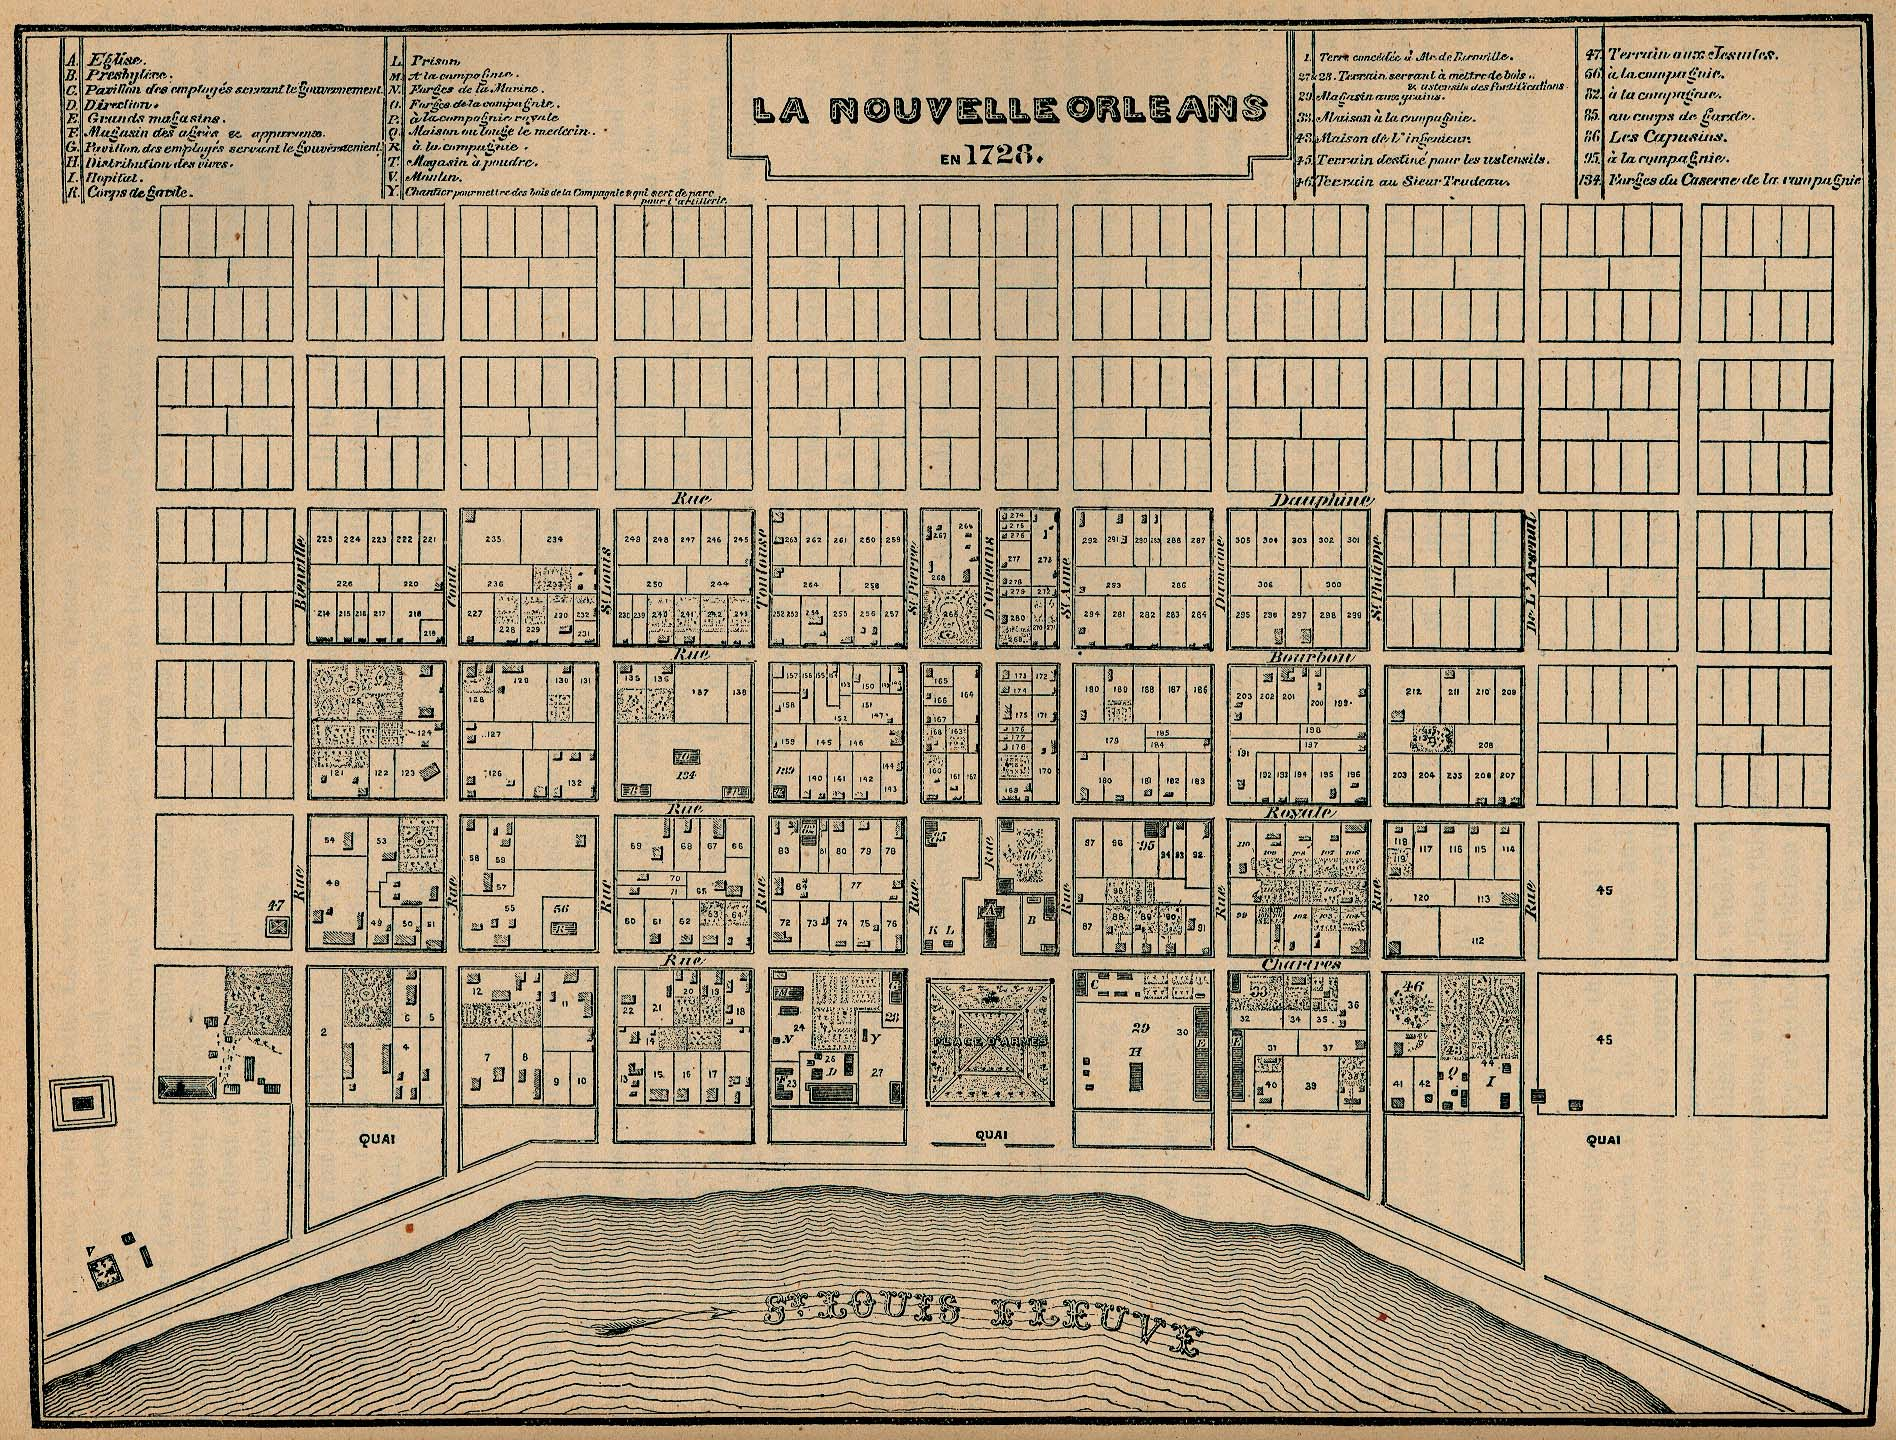 nola history 8 fascinating old new orleans maps gonola